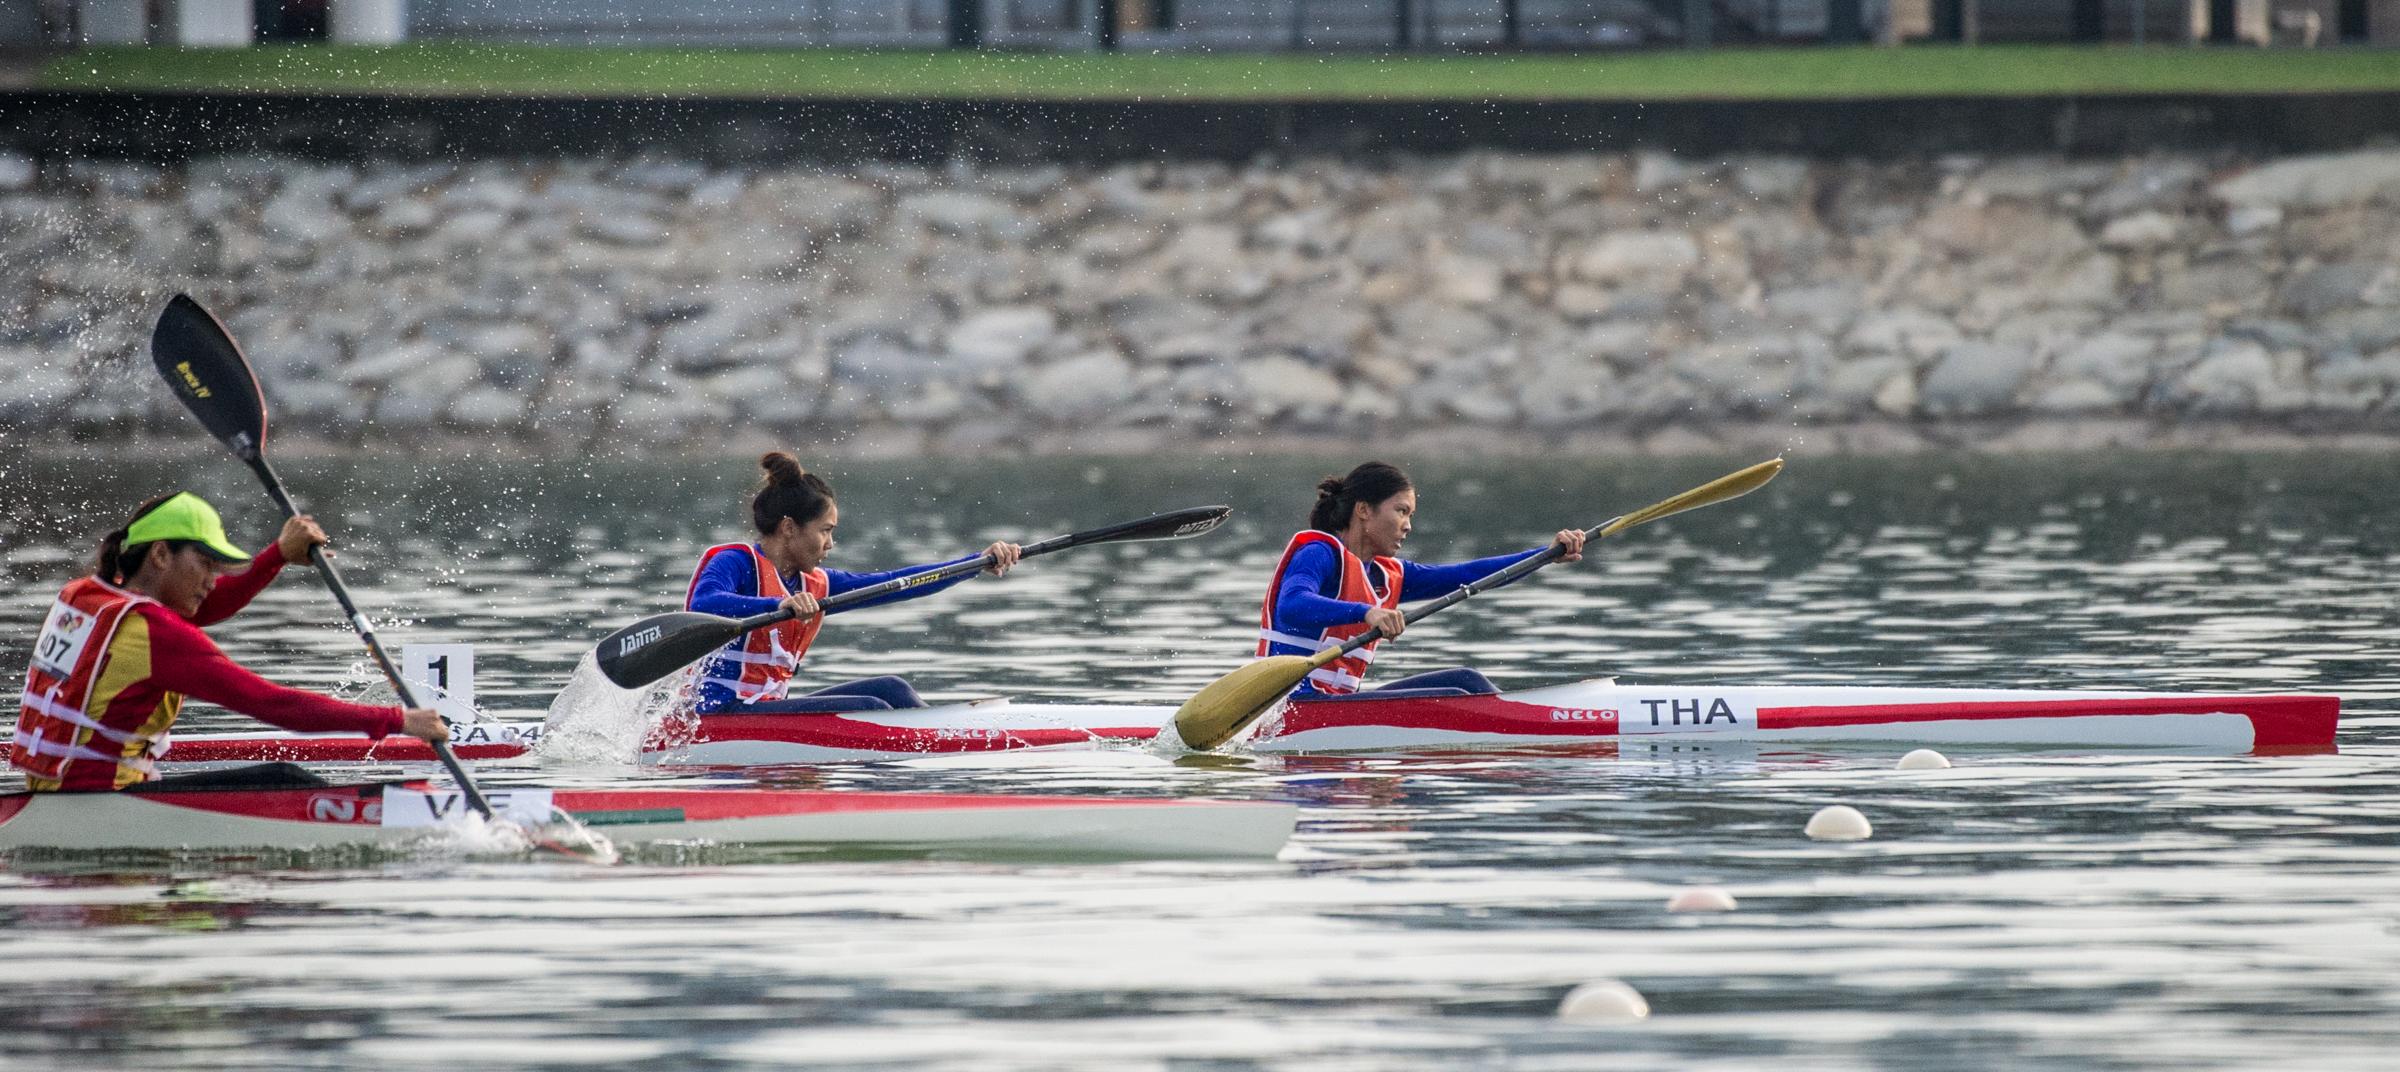 A Thai pair take an early lead in the Canoeing competition of the ASEAN University Games at the Marina Channel.